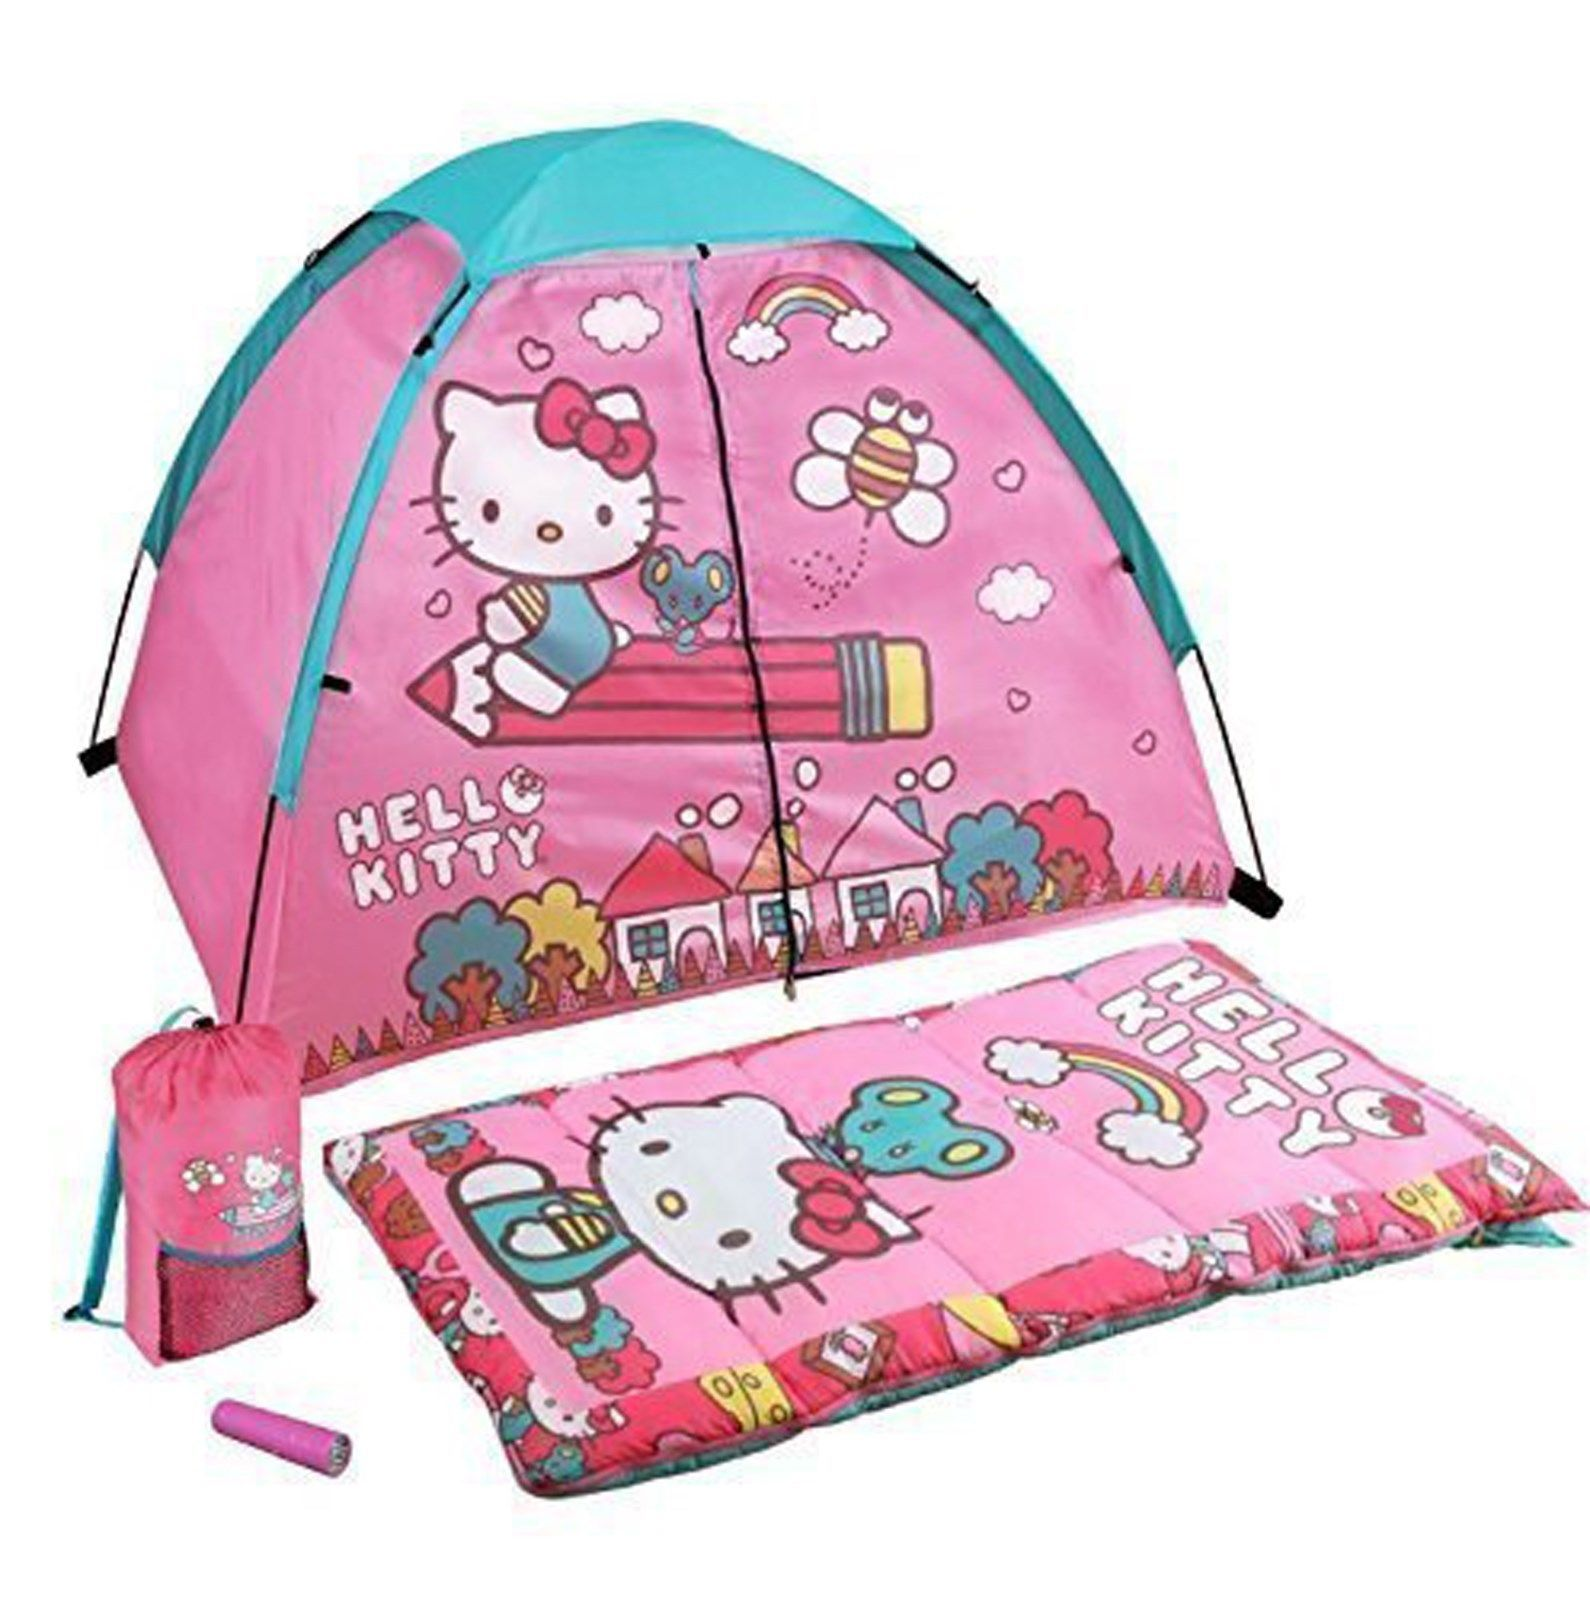 Hello Kitty 4 Piece Kids C& Kit - Indoor / Outdoor Play Tent Sleeping Bag Carry Sack u0026 Flashlight - of the day spreadsheet  sc 1 st  Pinterest : kids tent kit - memphite.com